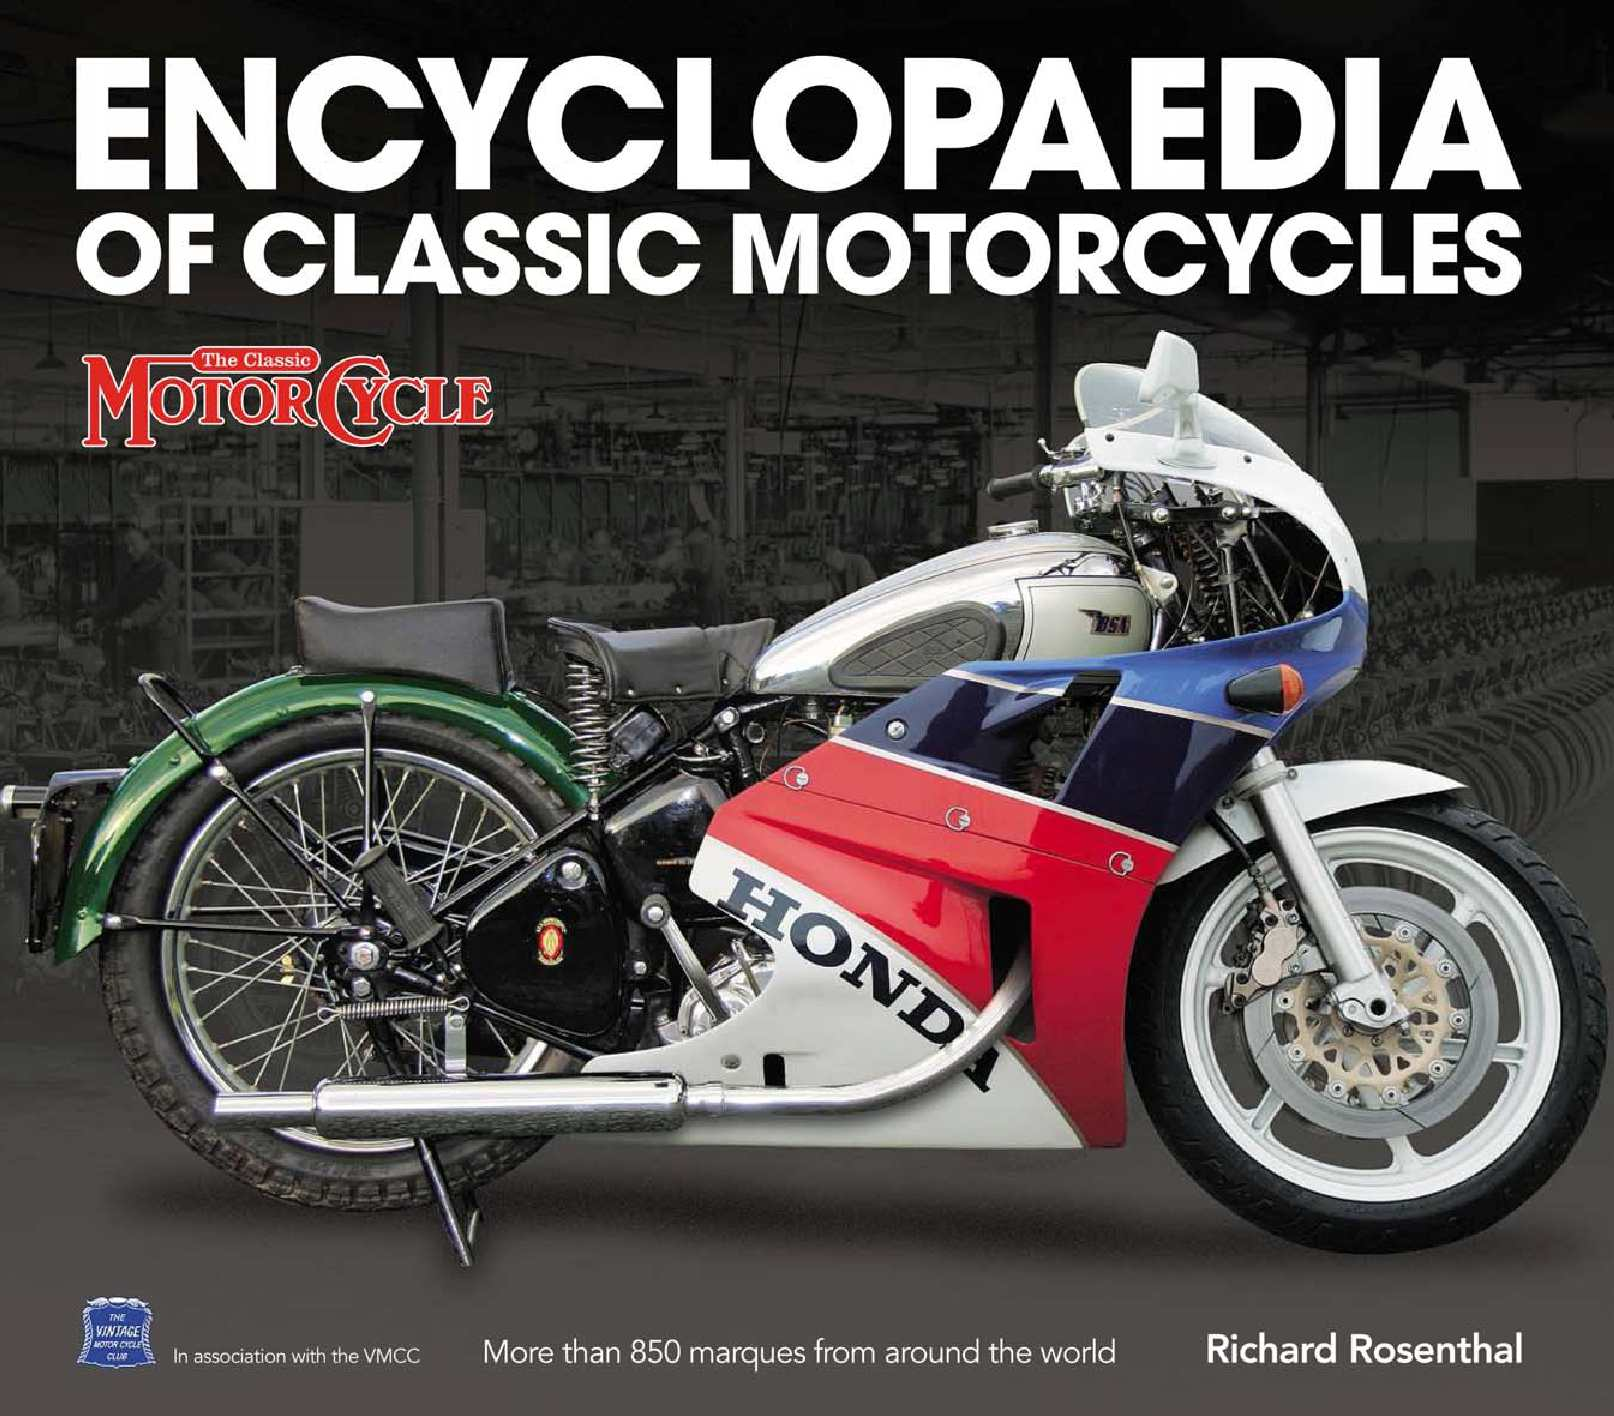 Calamo Encyclopaedia Of Classic Motorcycles 1954 Allstate Scooter Wiring Diagram